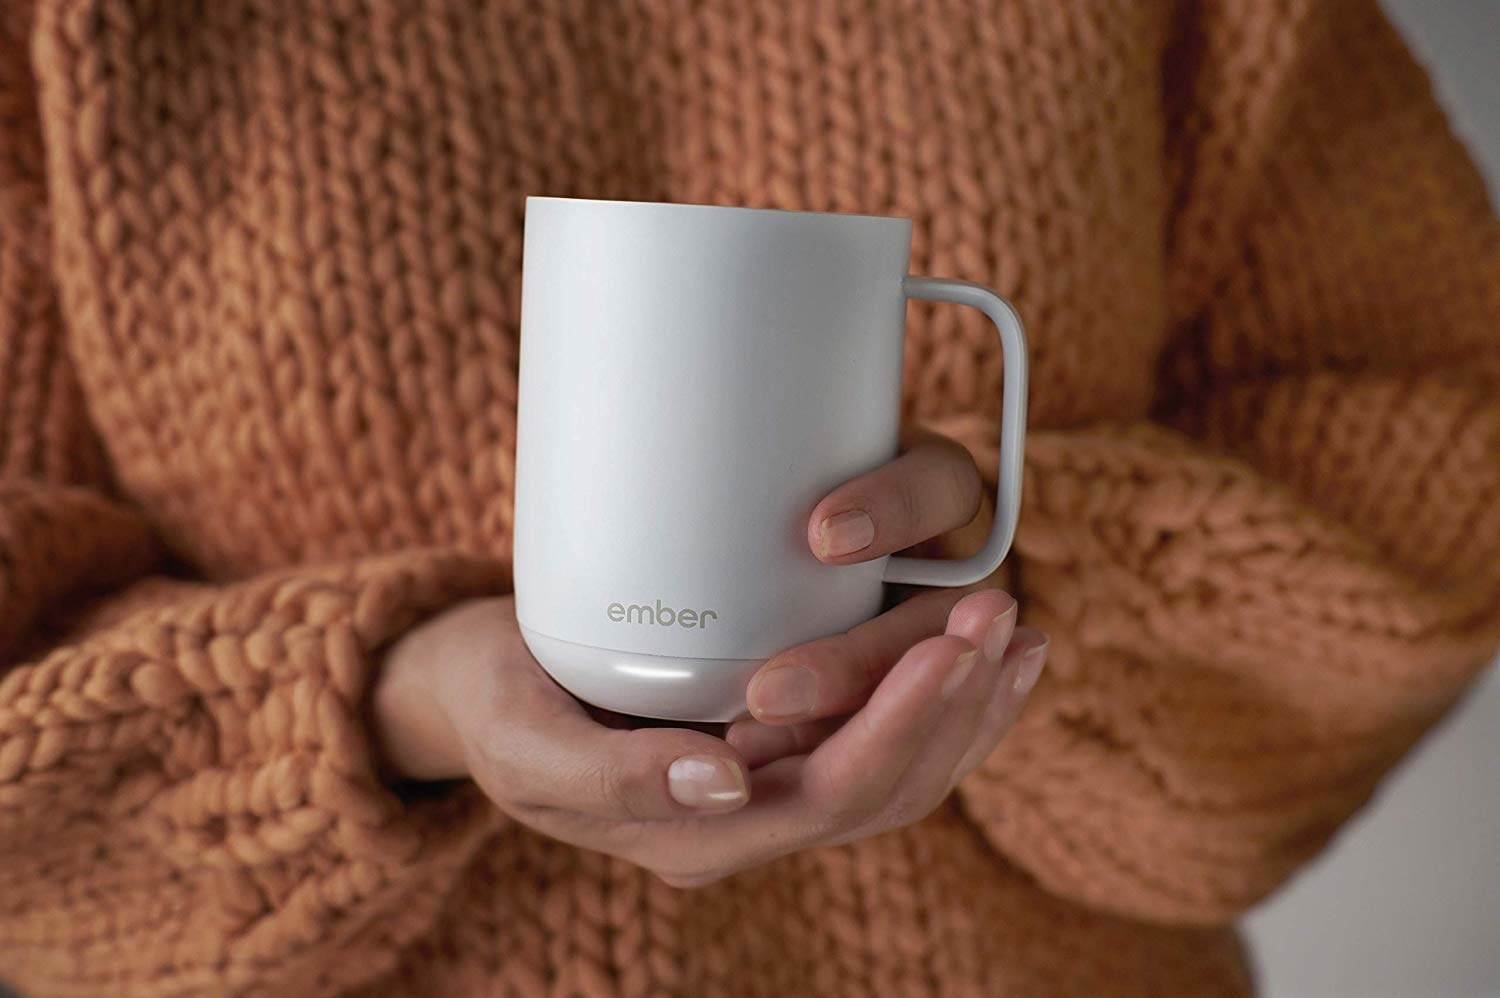 A person holding the mug in front of them